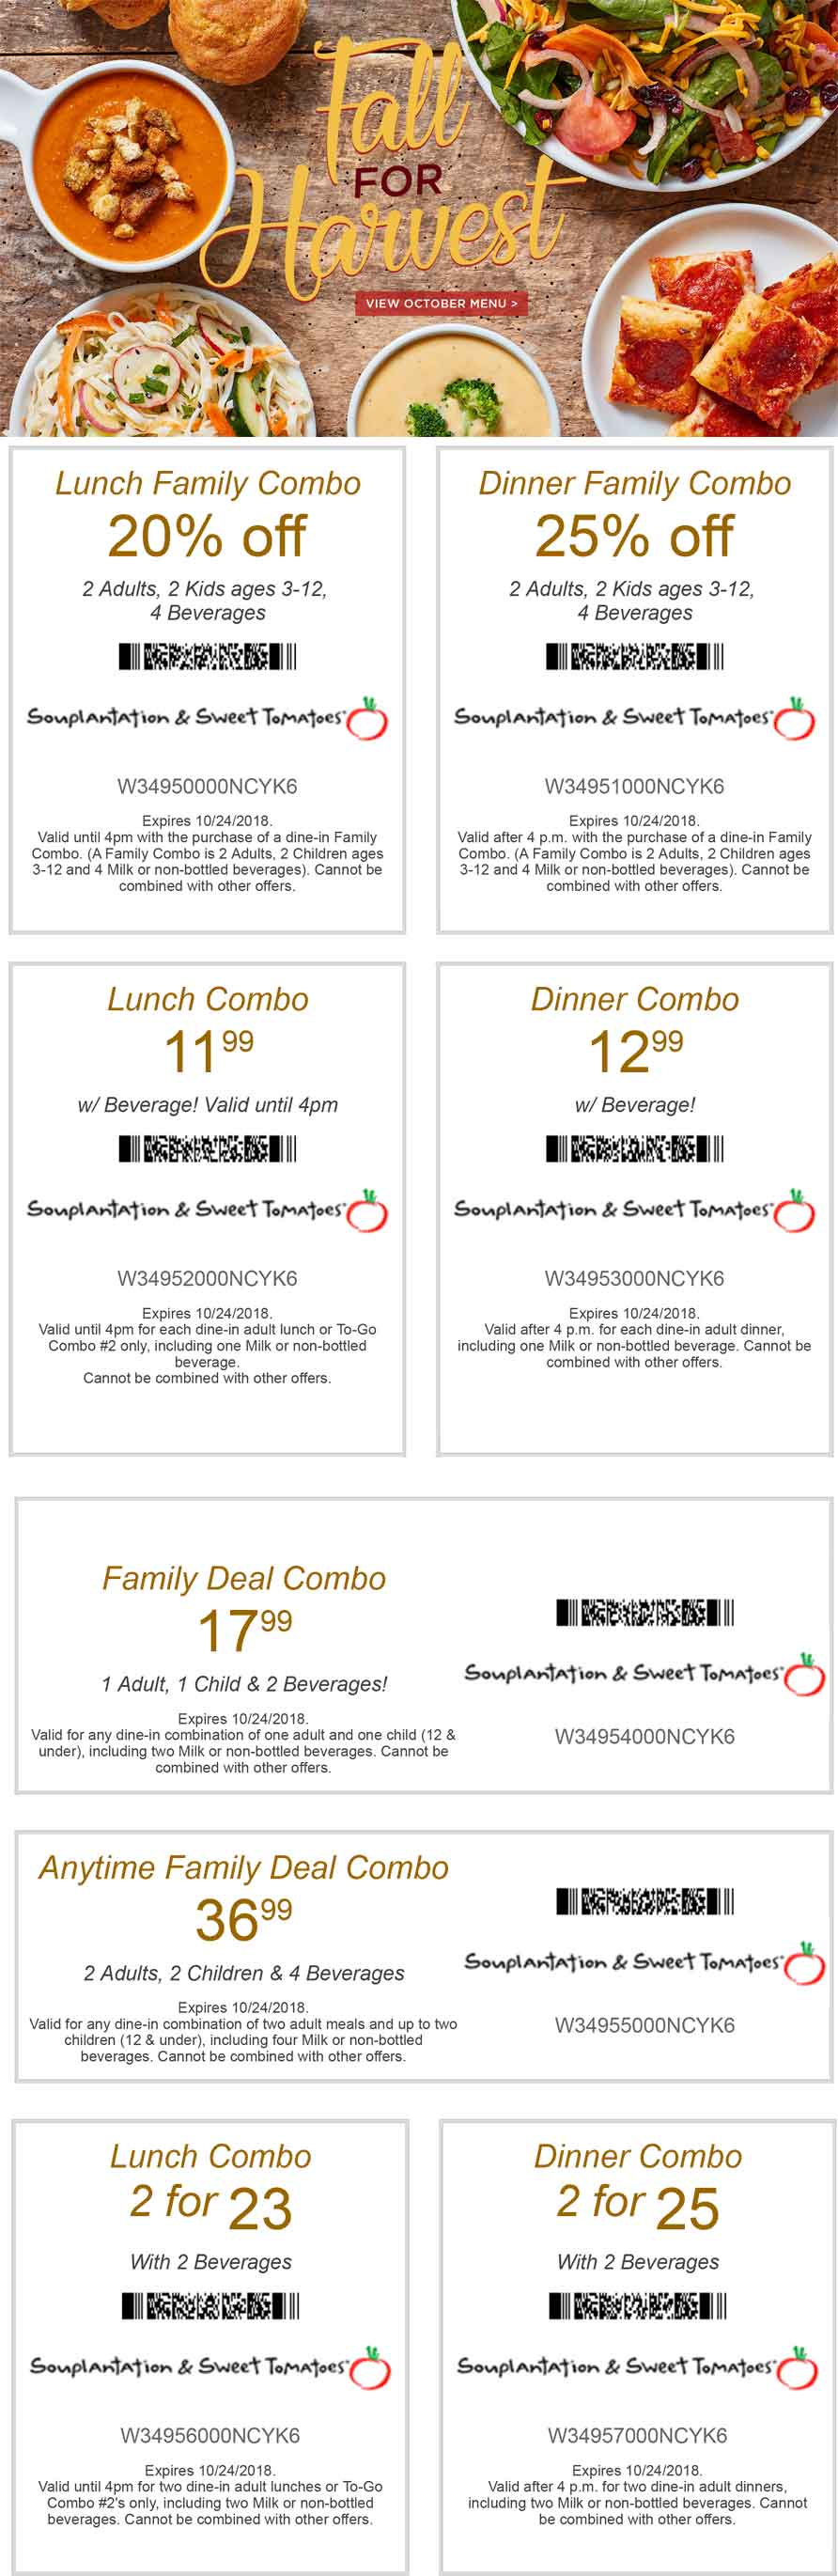 Sweet Tomatoes Coupon July 2019 20-25% off at Souplantation & Sweet Tomatoes restaurants